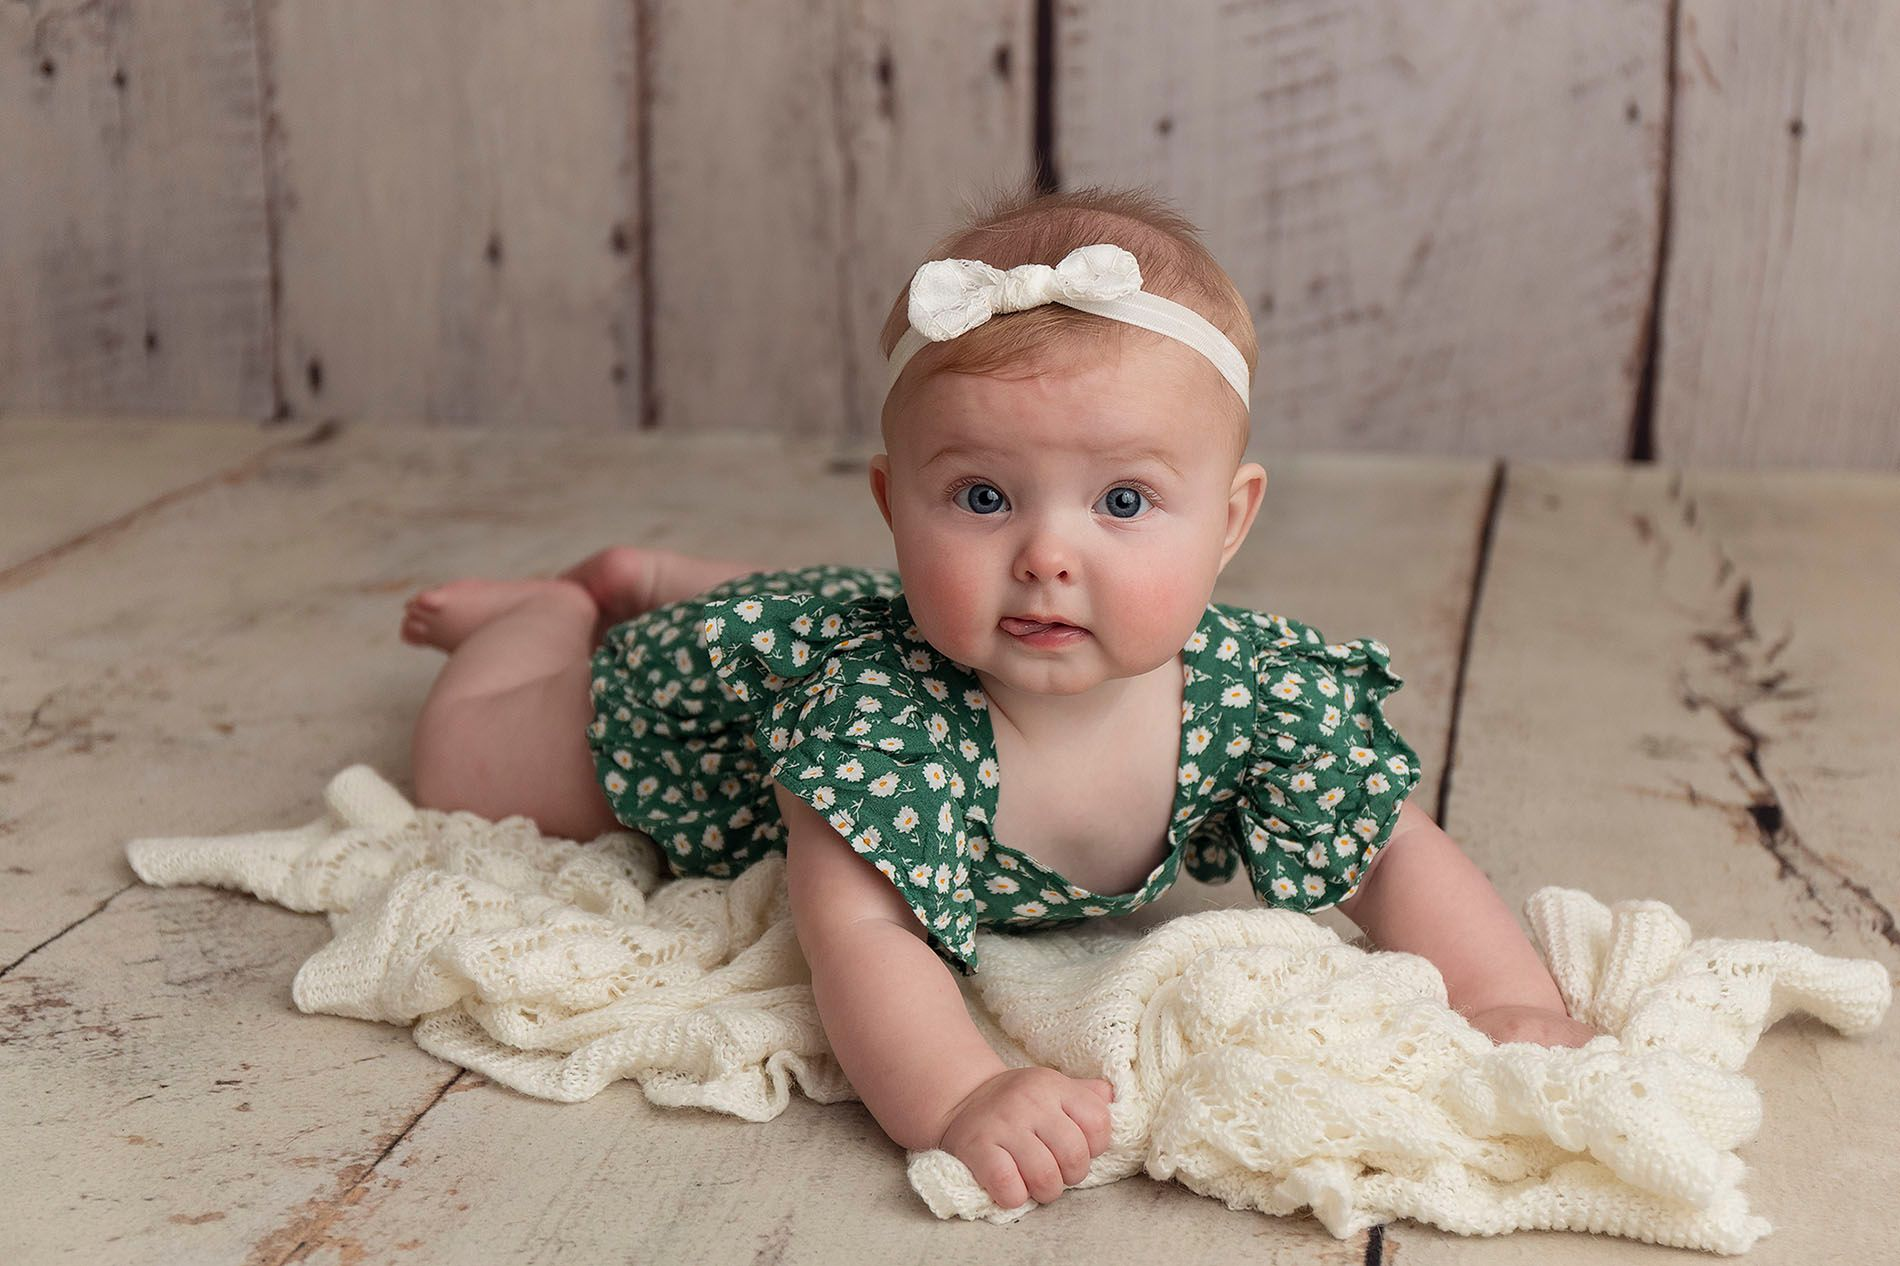 Little Brown Rabbit Photography - Baby photographer in Perth - 6 month old girl in green romper